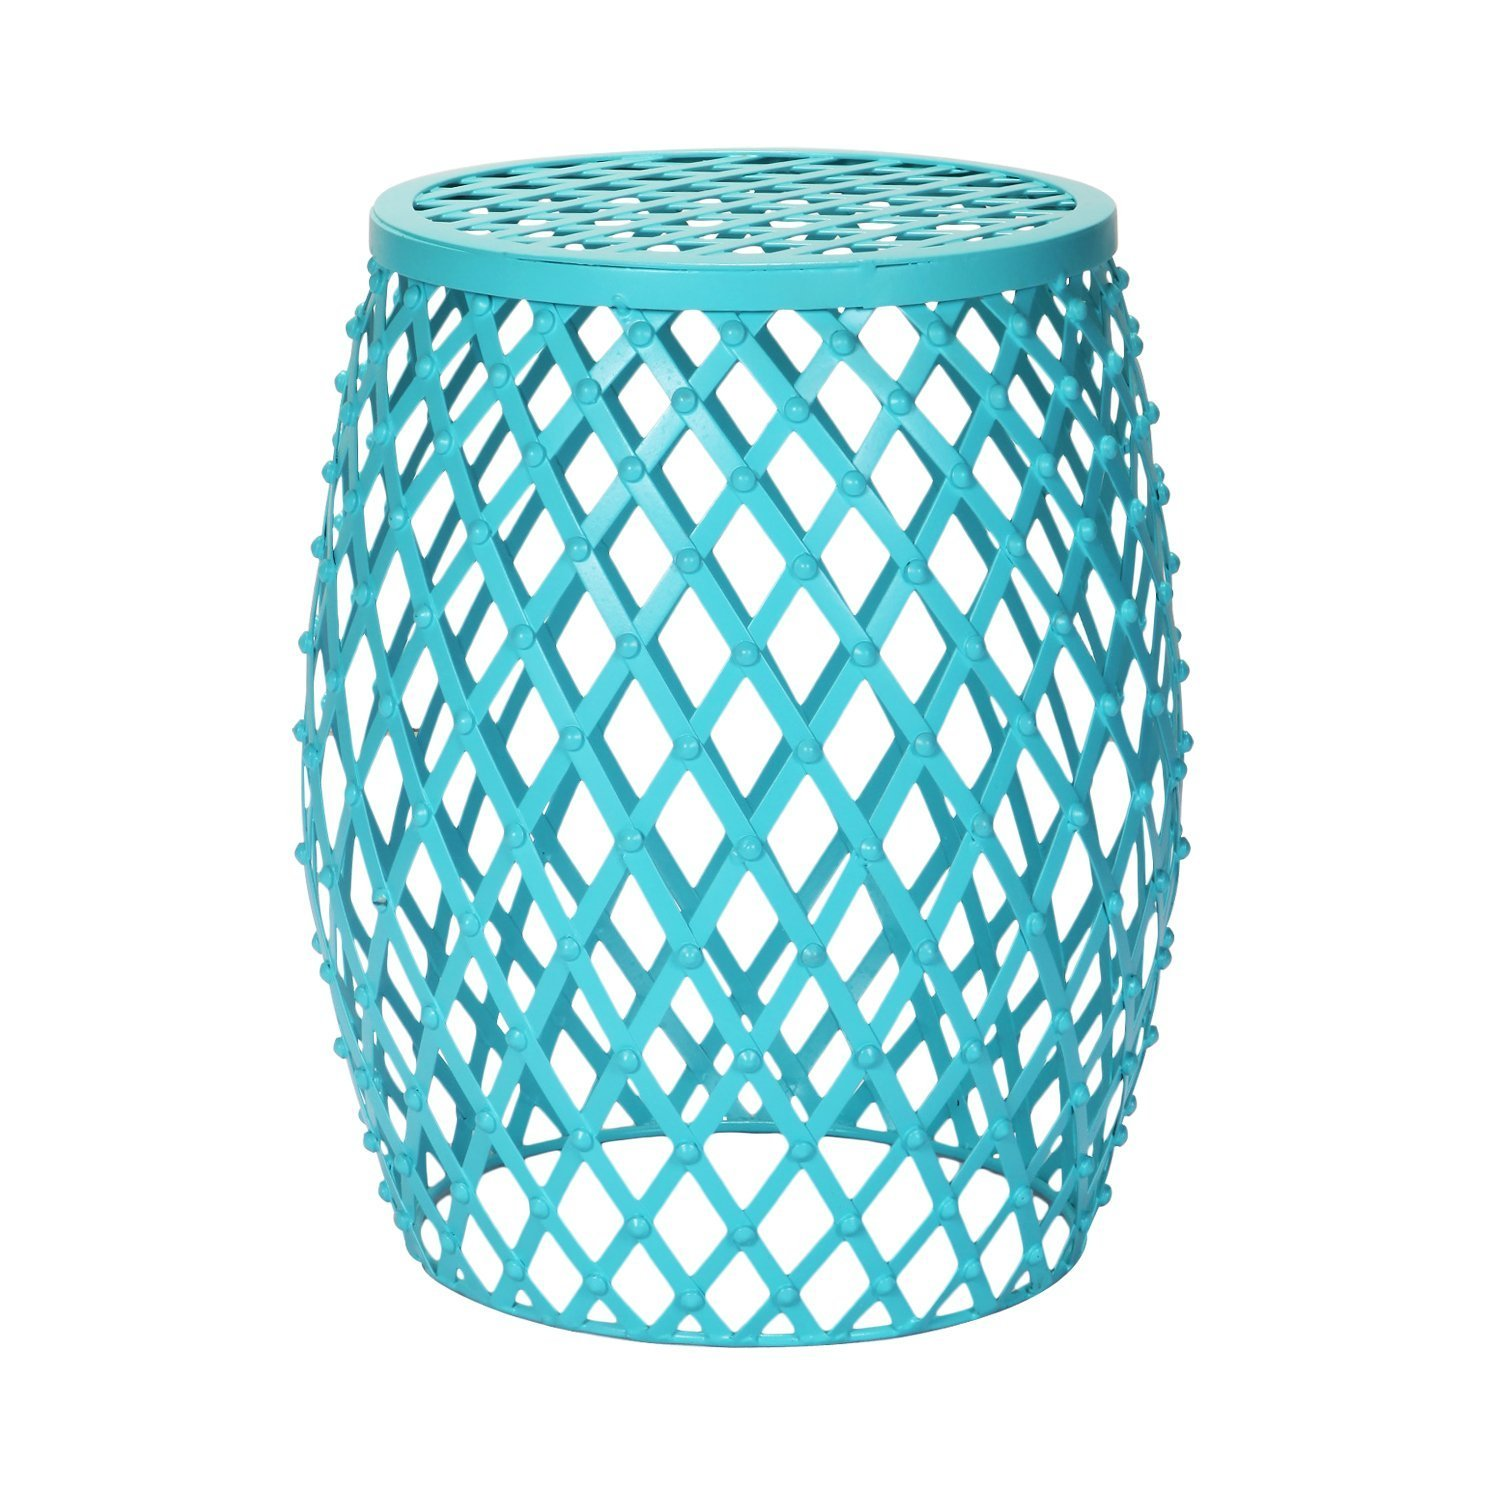 Homebeez Home Garden Accents Wire Round Iron Metal Stripes Stool Side End Table Plant Stand, Hatched Diamond Pattern Sky Blue